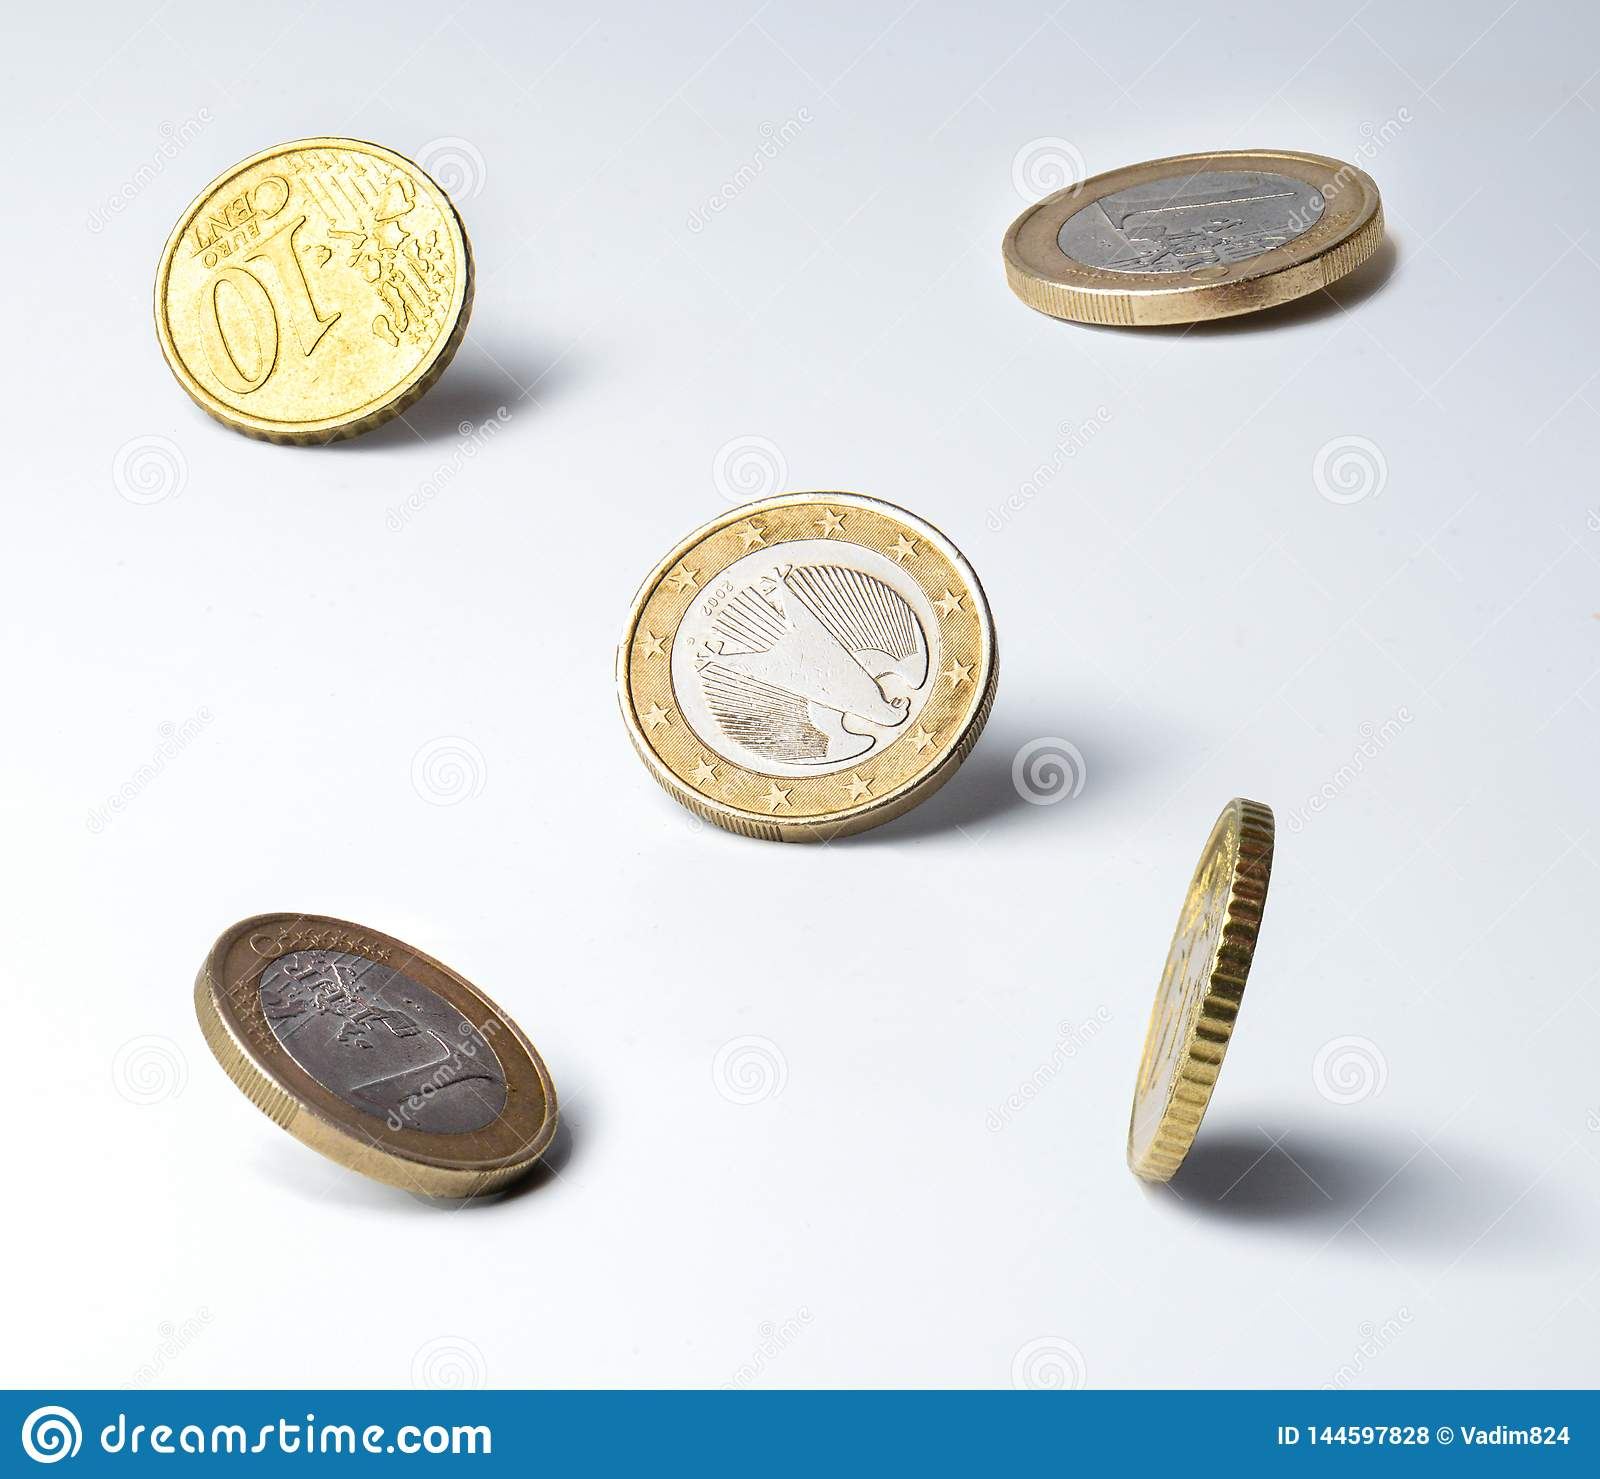 Euro coins in an unstable position on the edge. Clear shadows. Close quarters. Symbol of finance, money circulation, market